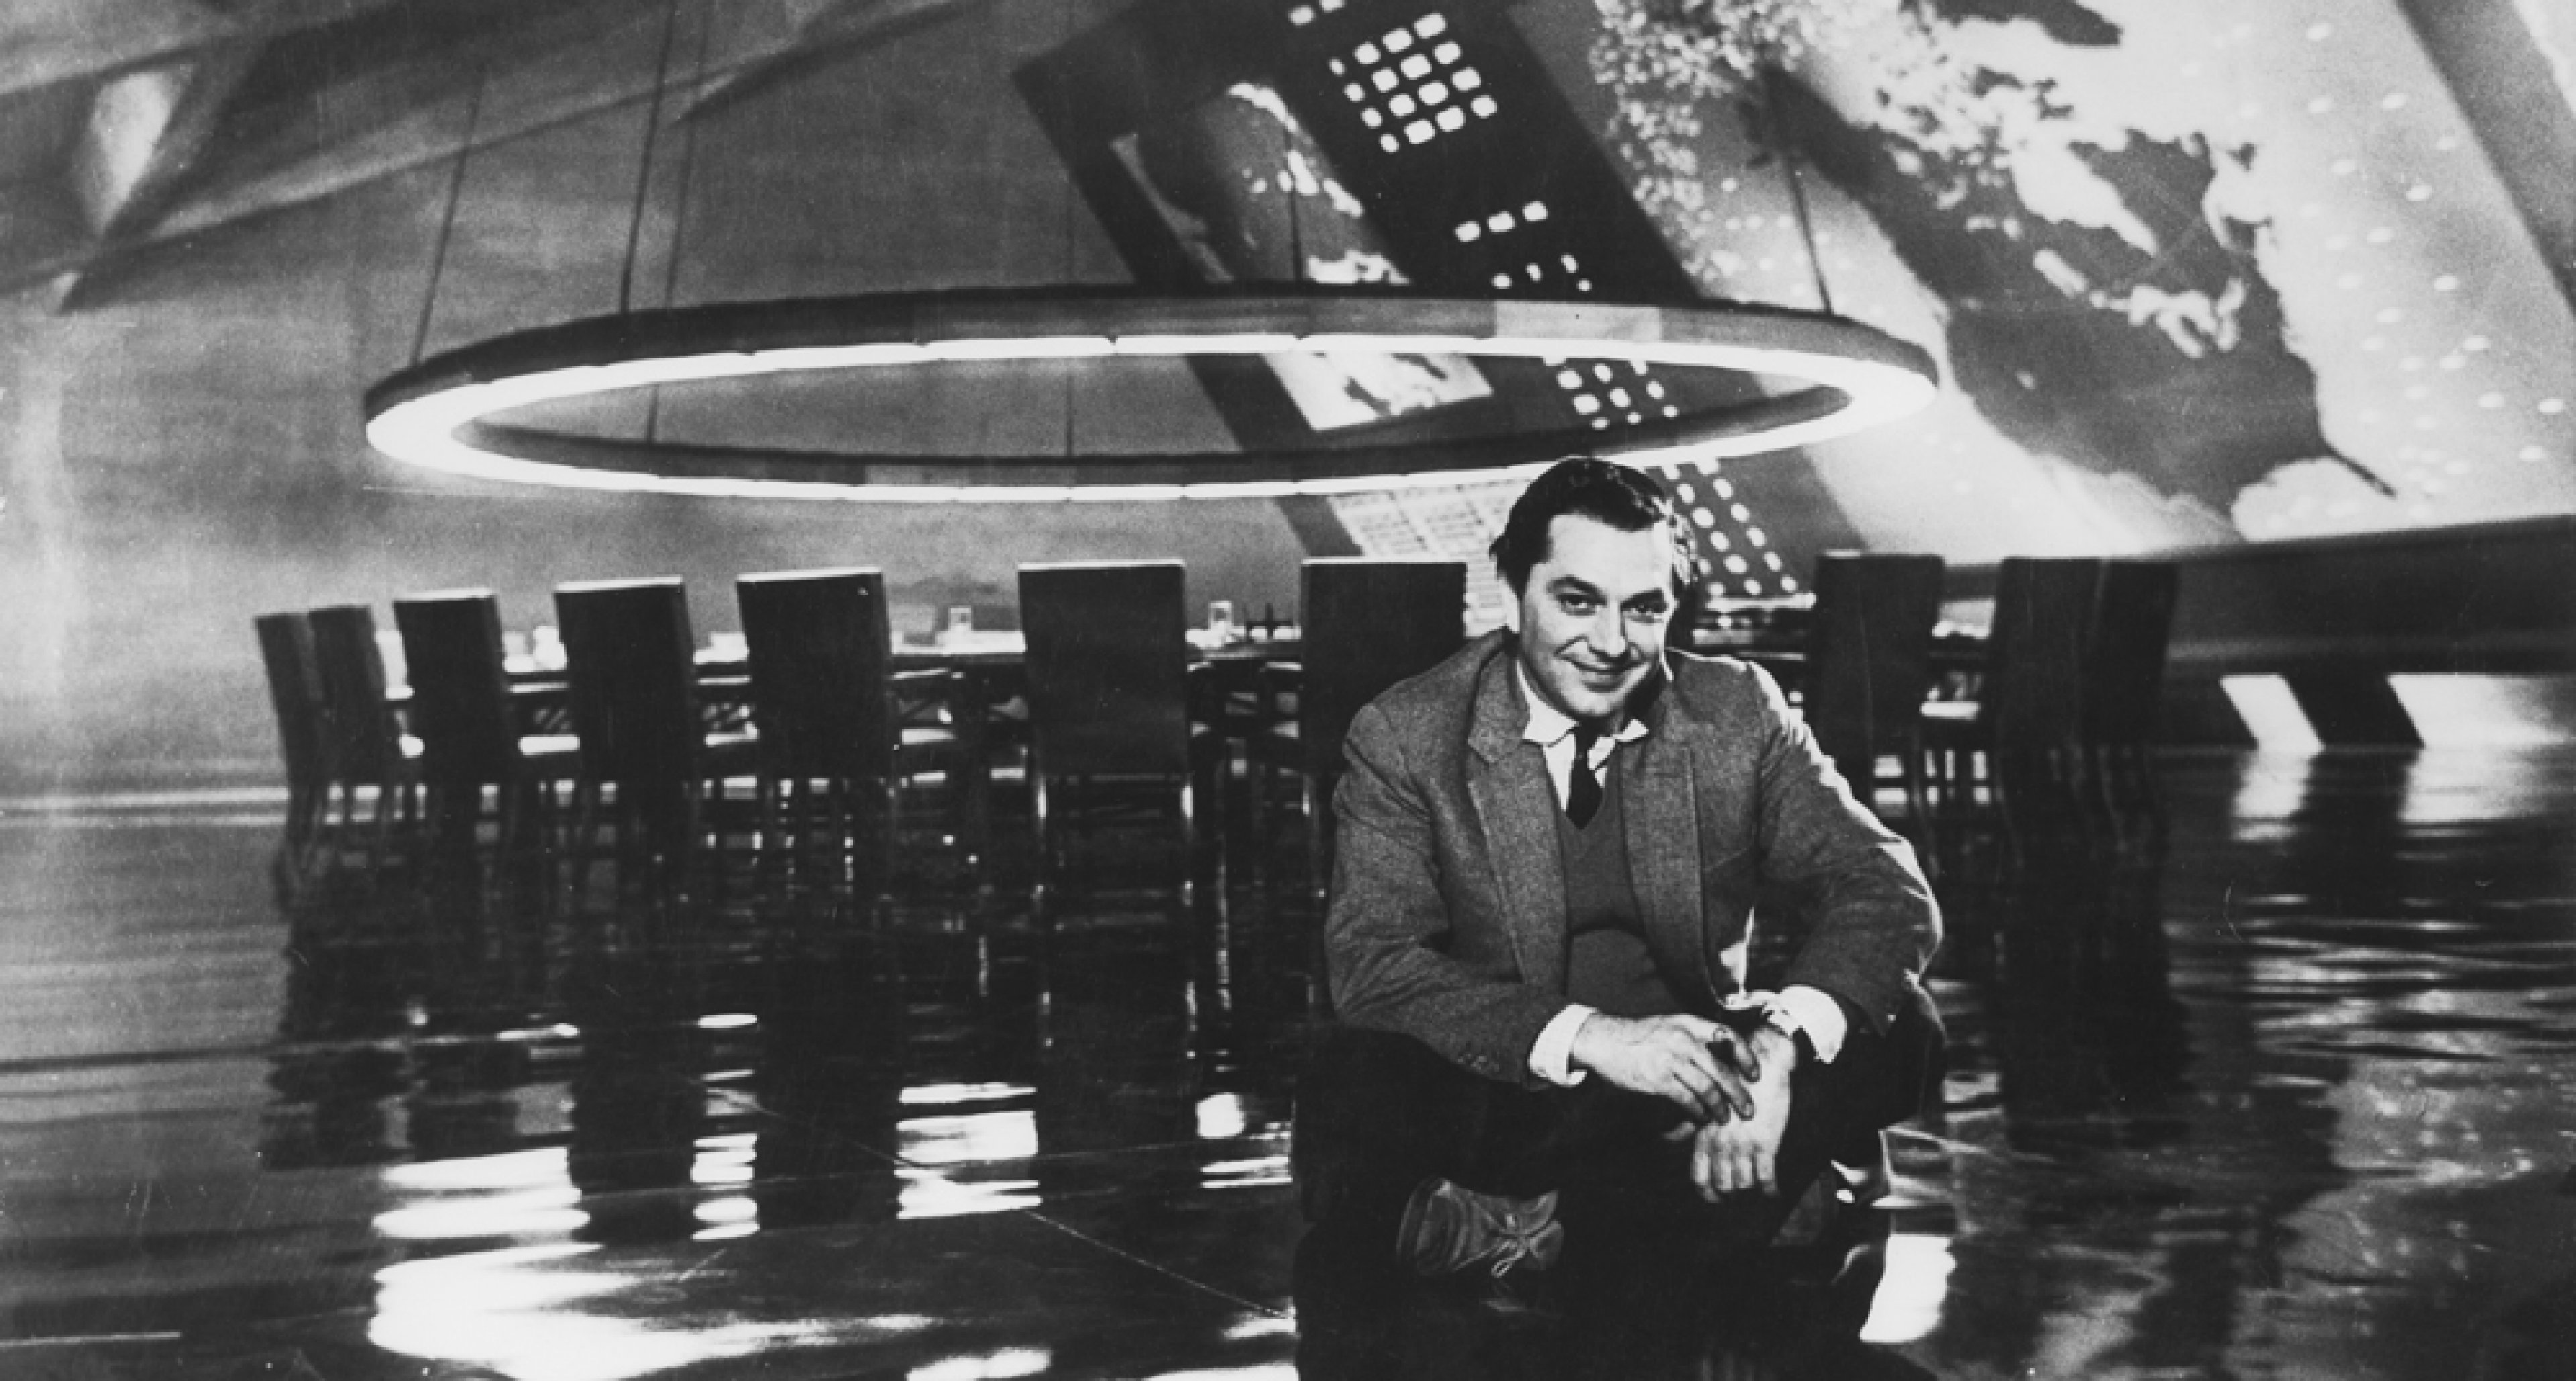 """Ken Adam am Set des """"War Room"""" DR. STRANGELOVE OR: HOW I LEARNED TO STOP WORRYING AND LOVE THE BOMB GB/USA 1964, Regie: Stanley Kubrick With thanks to the SK Film Archives LLC, Warner Bros. and University of the Arts London"""